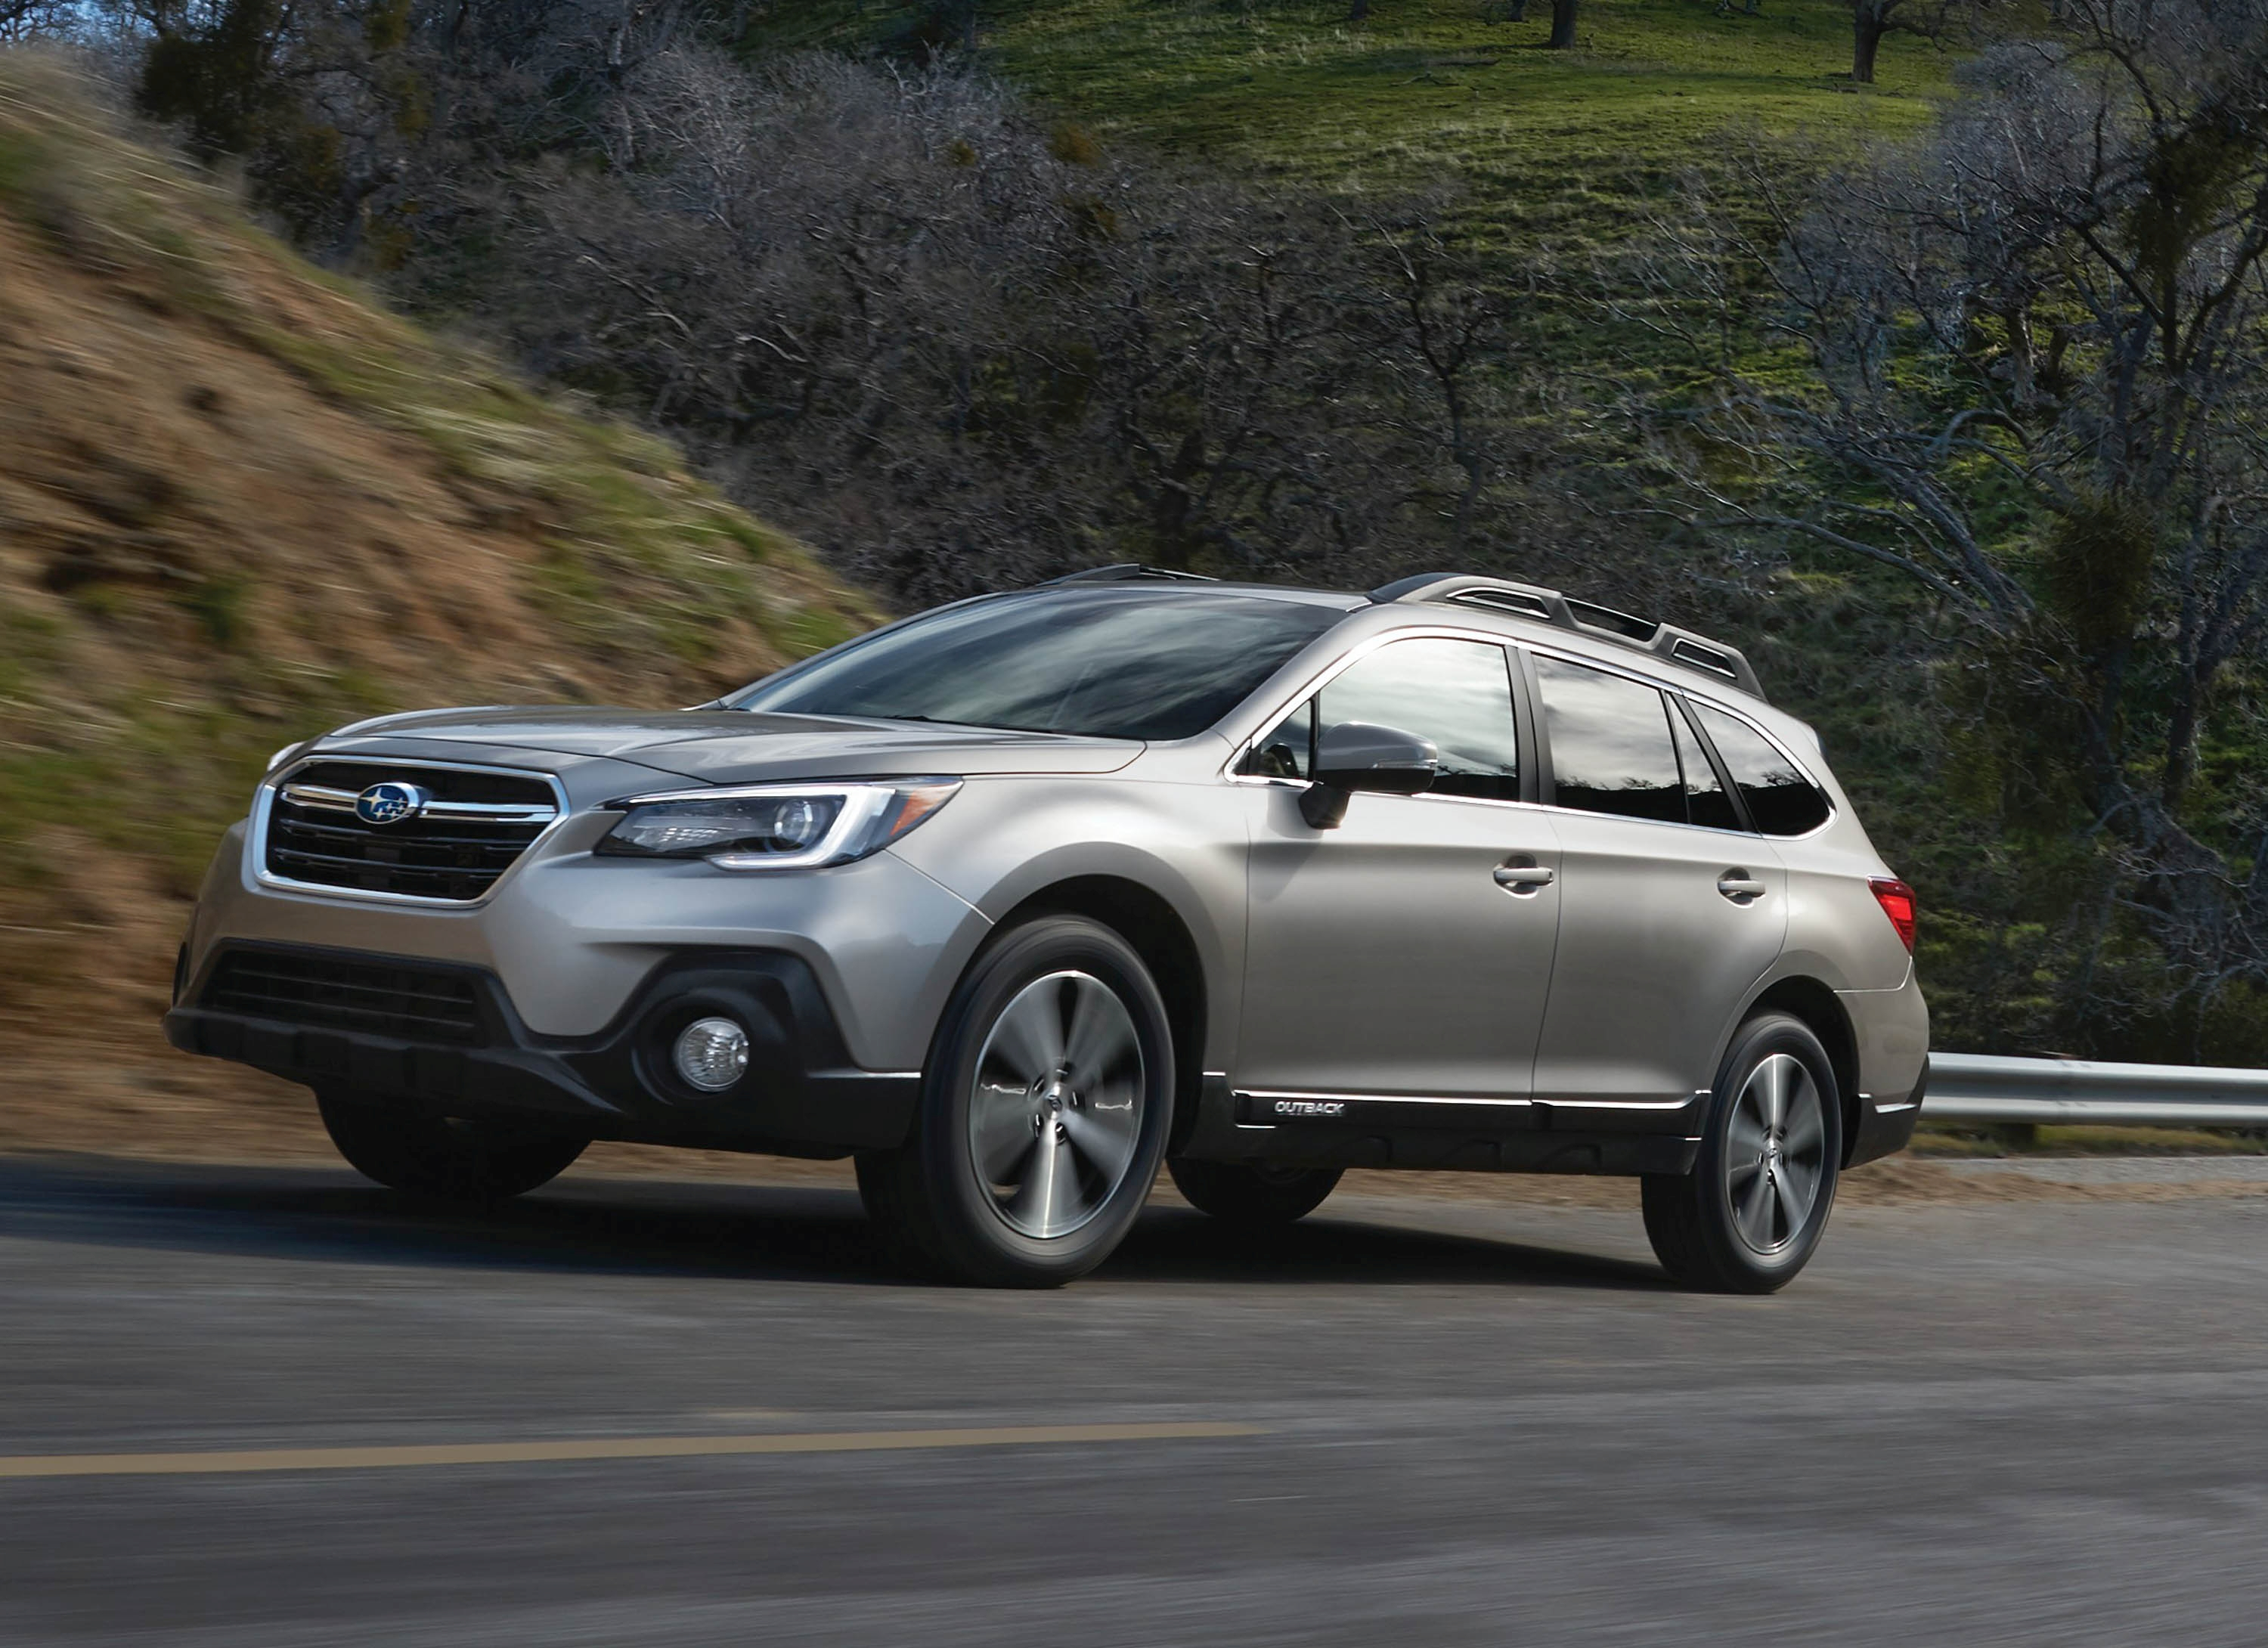 Subaru Wins Best Overall Brand in KBB's Brand Image Awards